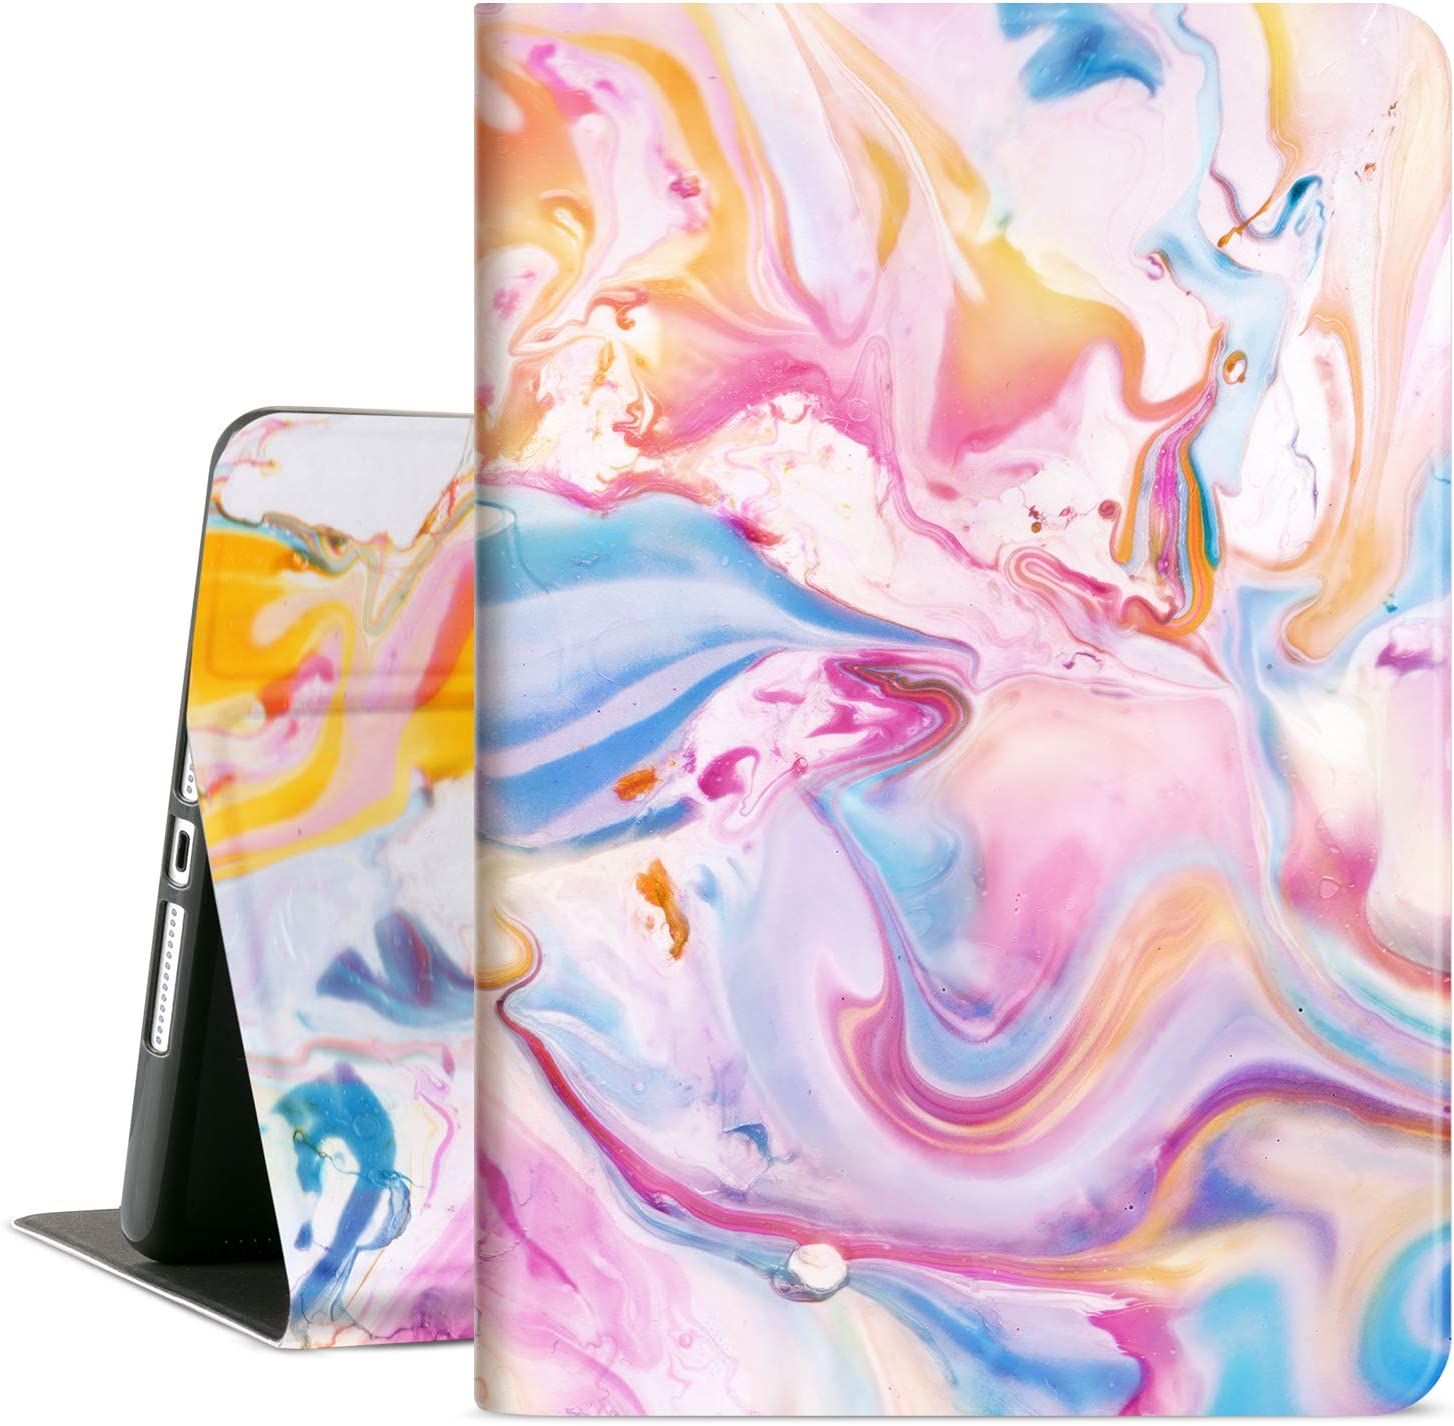 Cutebricase iPad 10.2 Case for iPad 9th Generation 2021, iPad 8th Generation 2020, 7th Generation iPad Case 2019, Multi-Angle View Adjustable Stand Auto Wake / Sleep (Tie-Dye Painting)